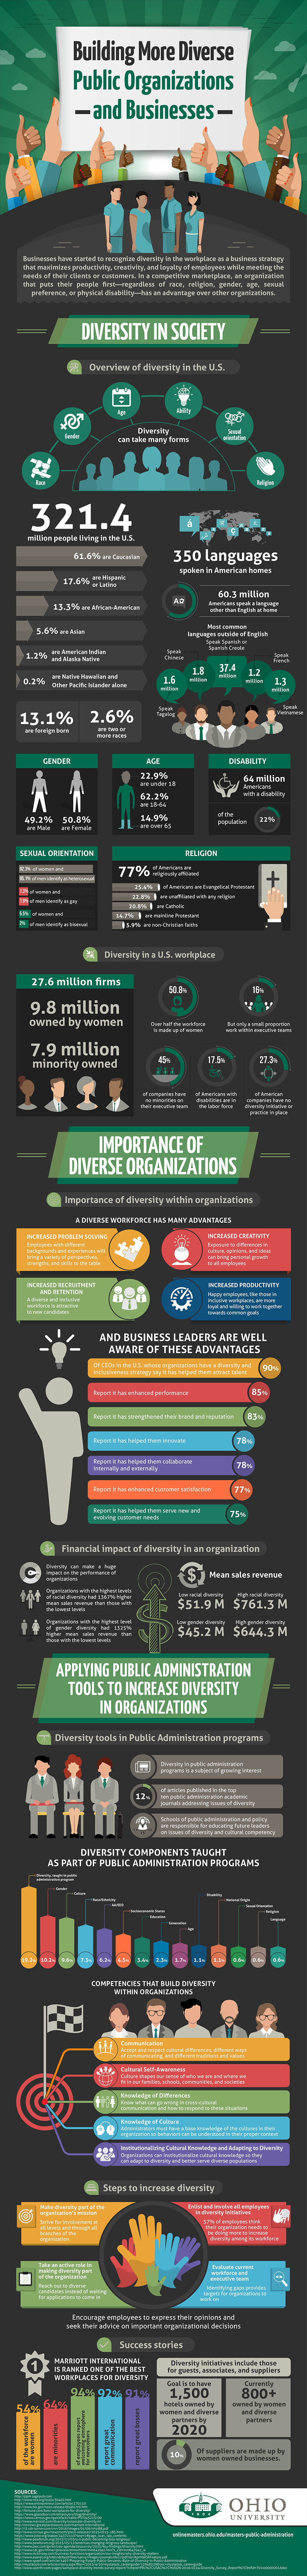 Building More Diverse Public Organizations & Businesses